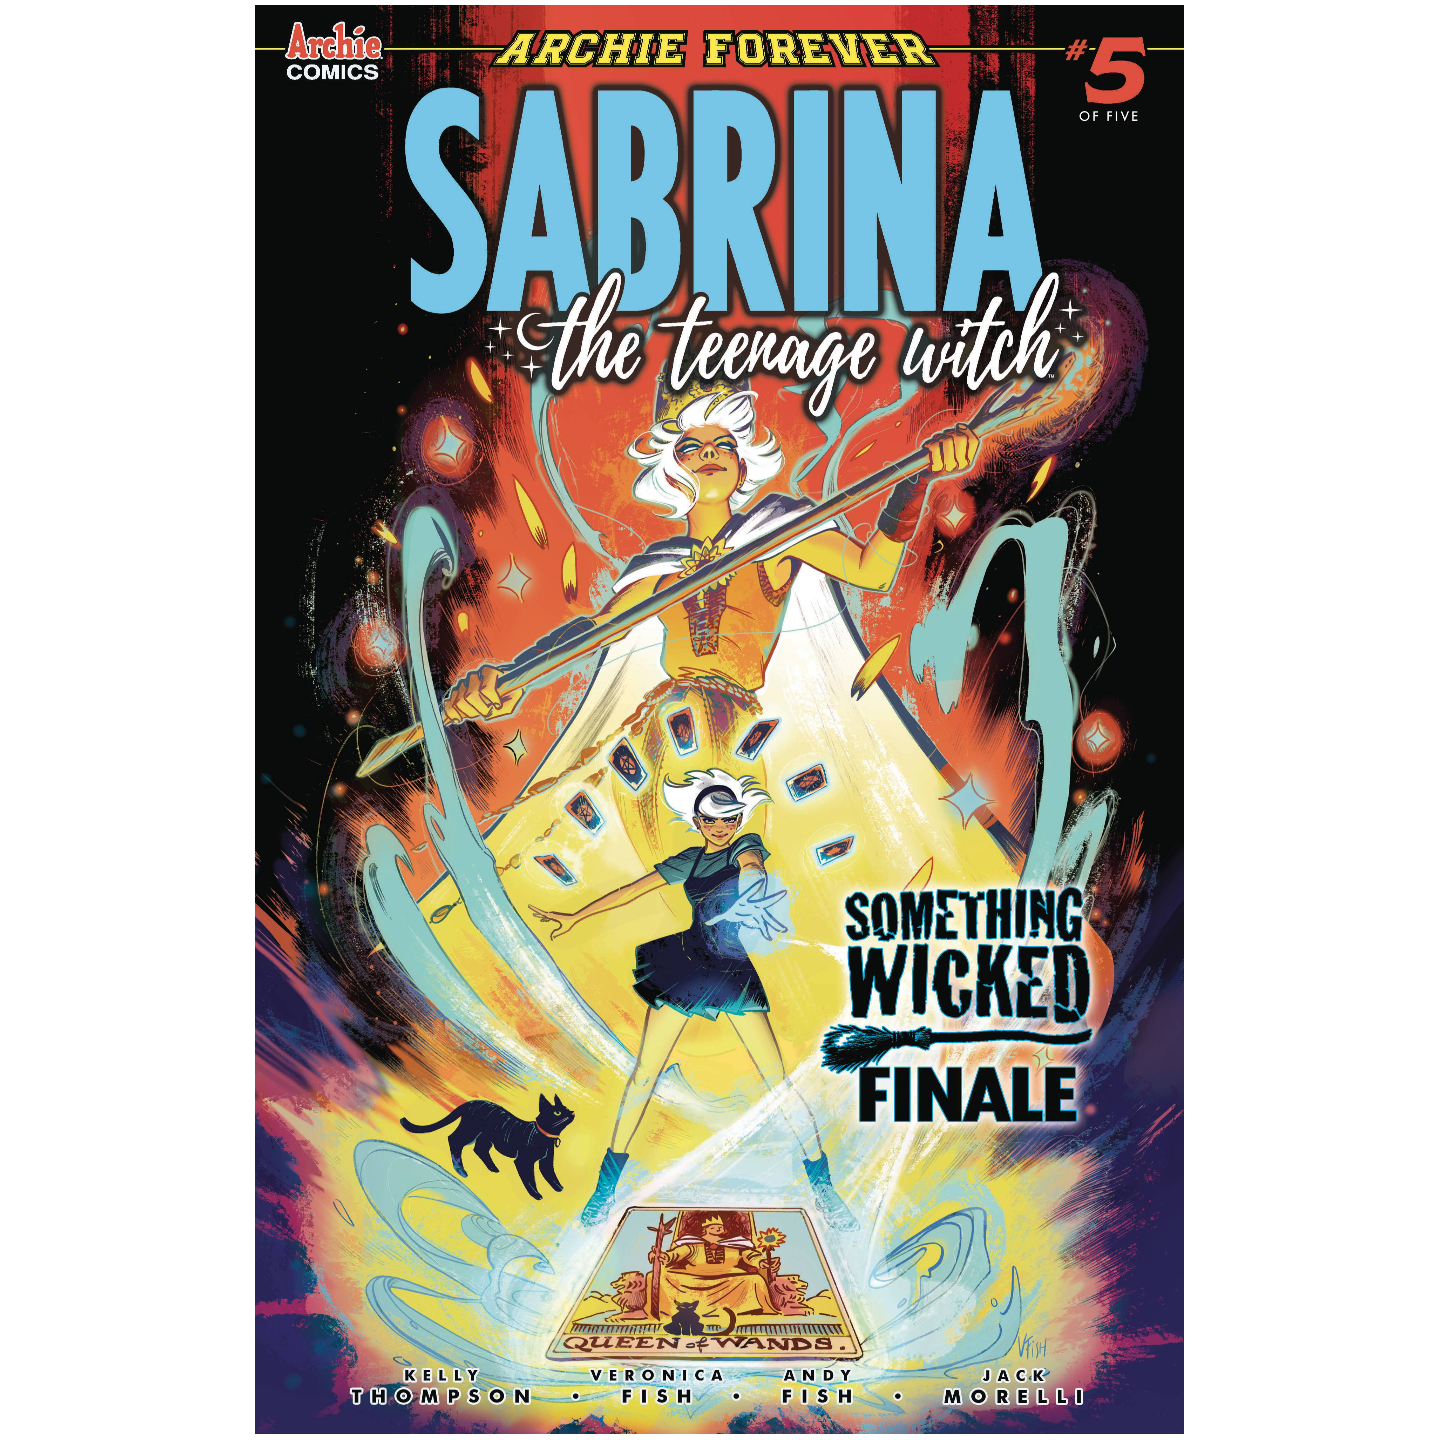 SABRINA SOMETHING WICKED #5 (OF 5) CVR A VERONICA FISH